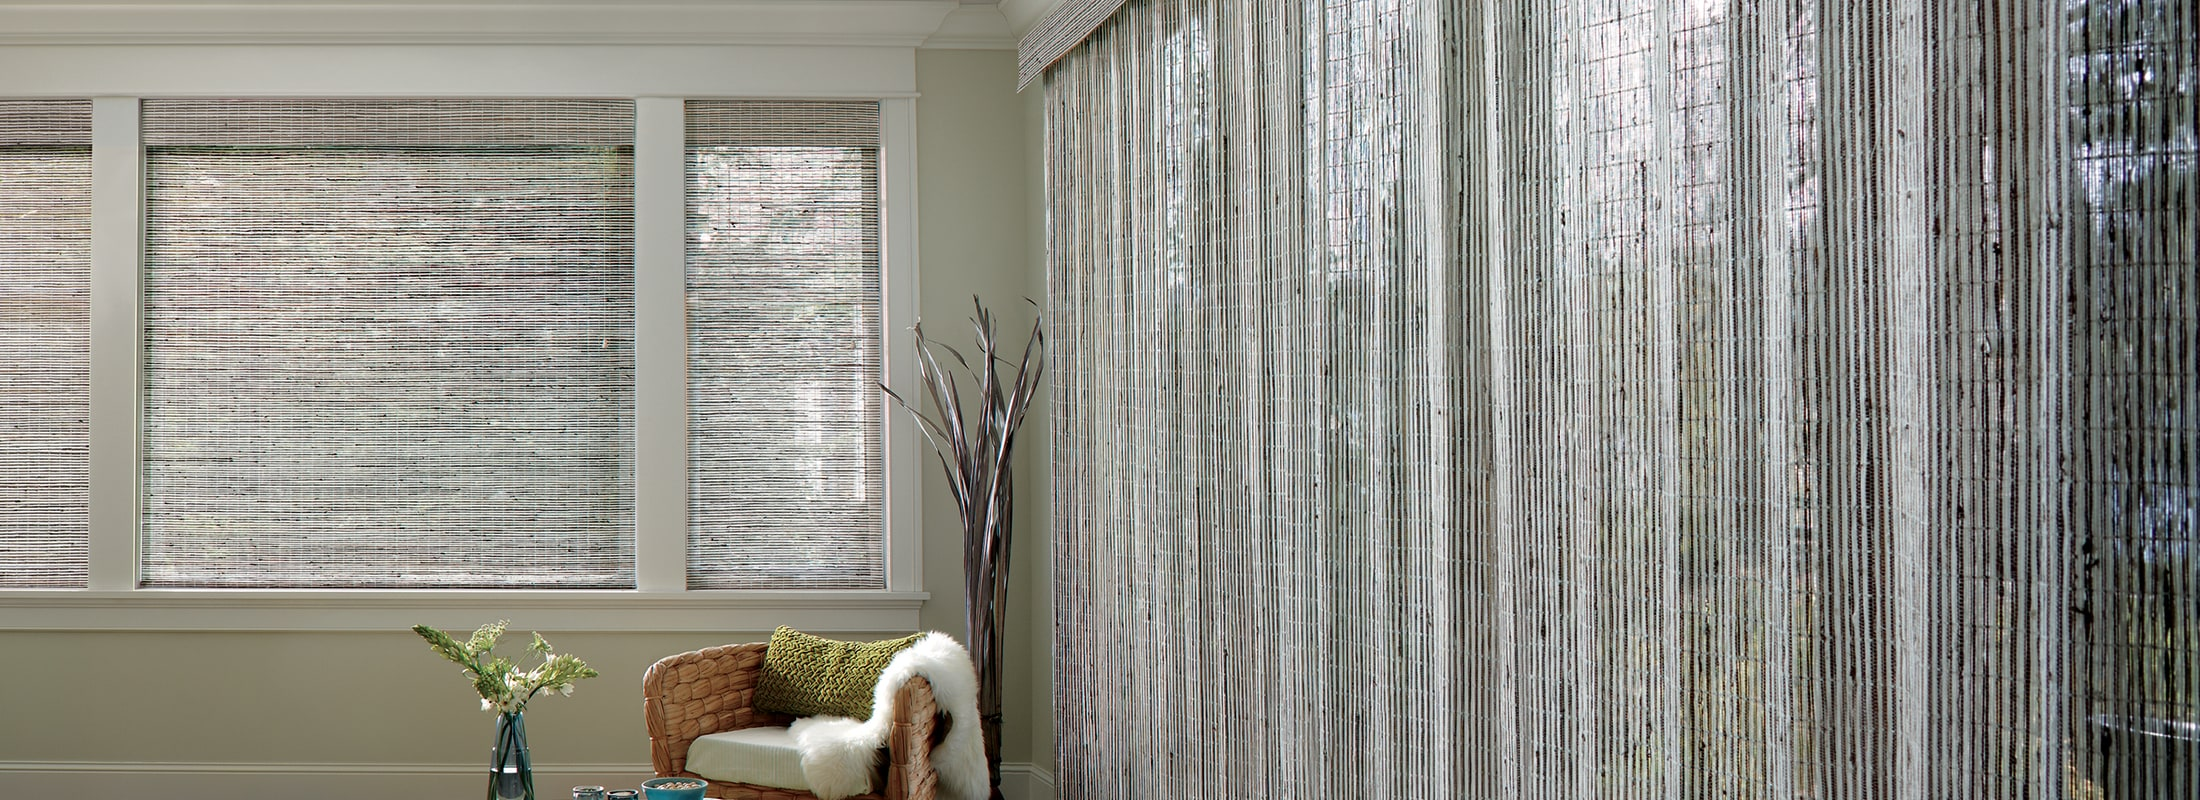 Bamboo Blinds | Wooden Shades | Provenance® | Hunter Douglas